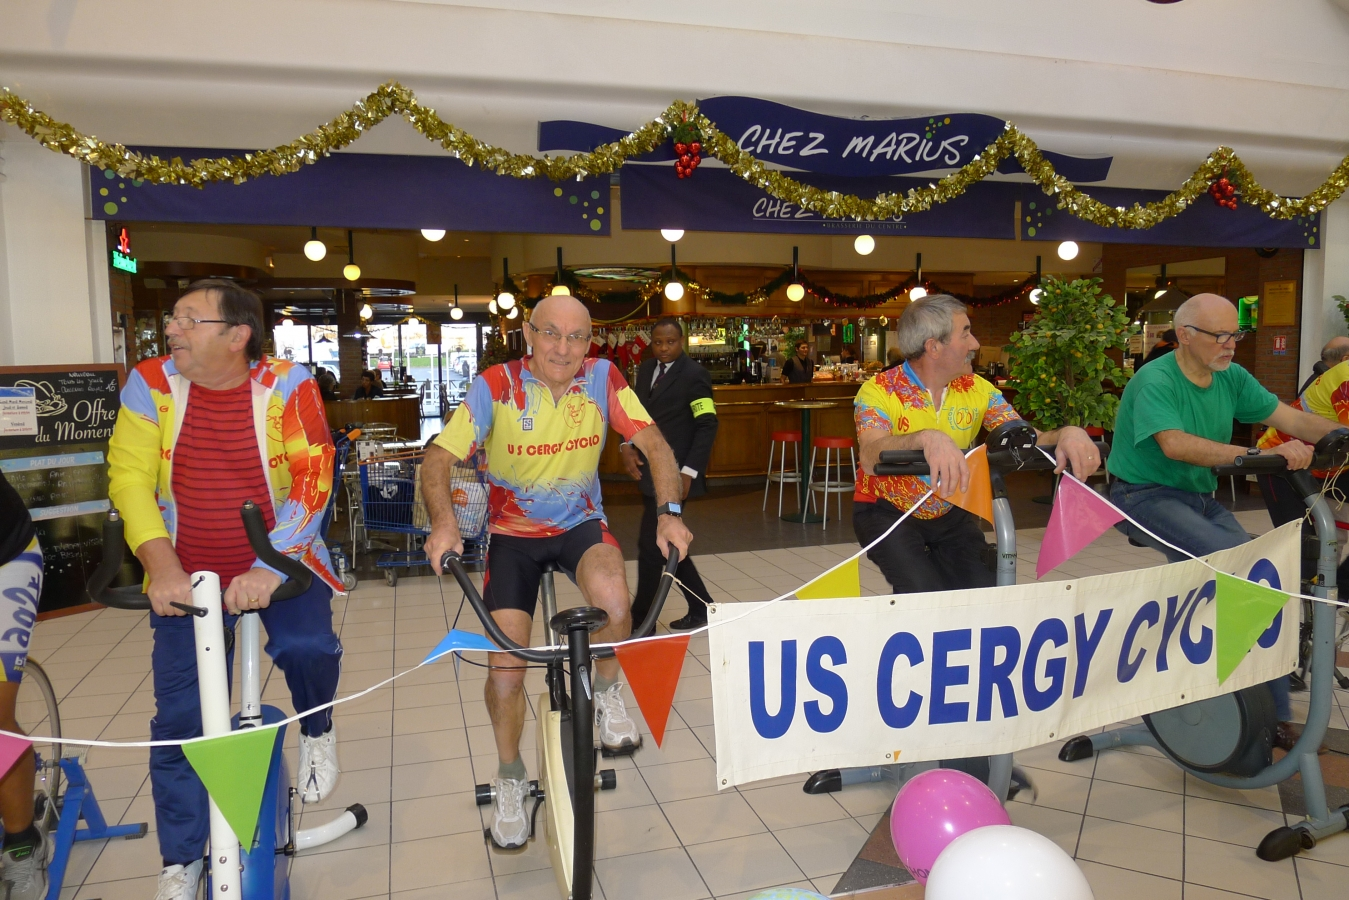 http://www.us-cergy-cyclo.fr/photos/2015/Telethon/Lionel/P1020624.JPG